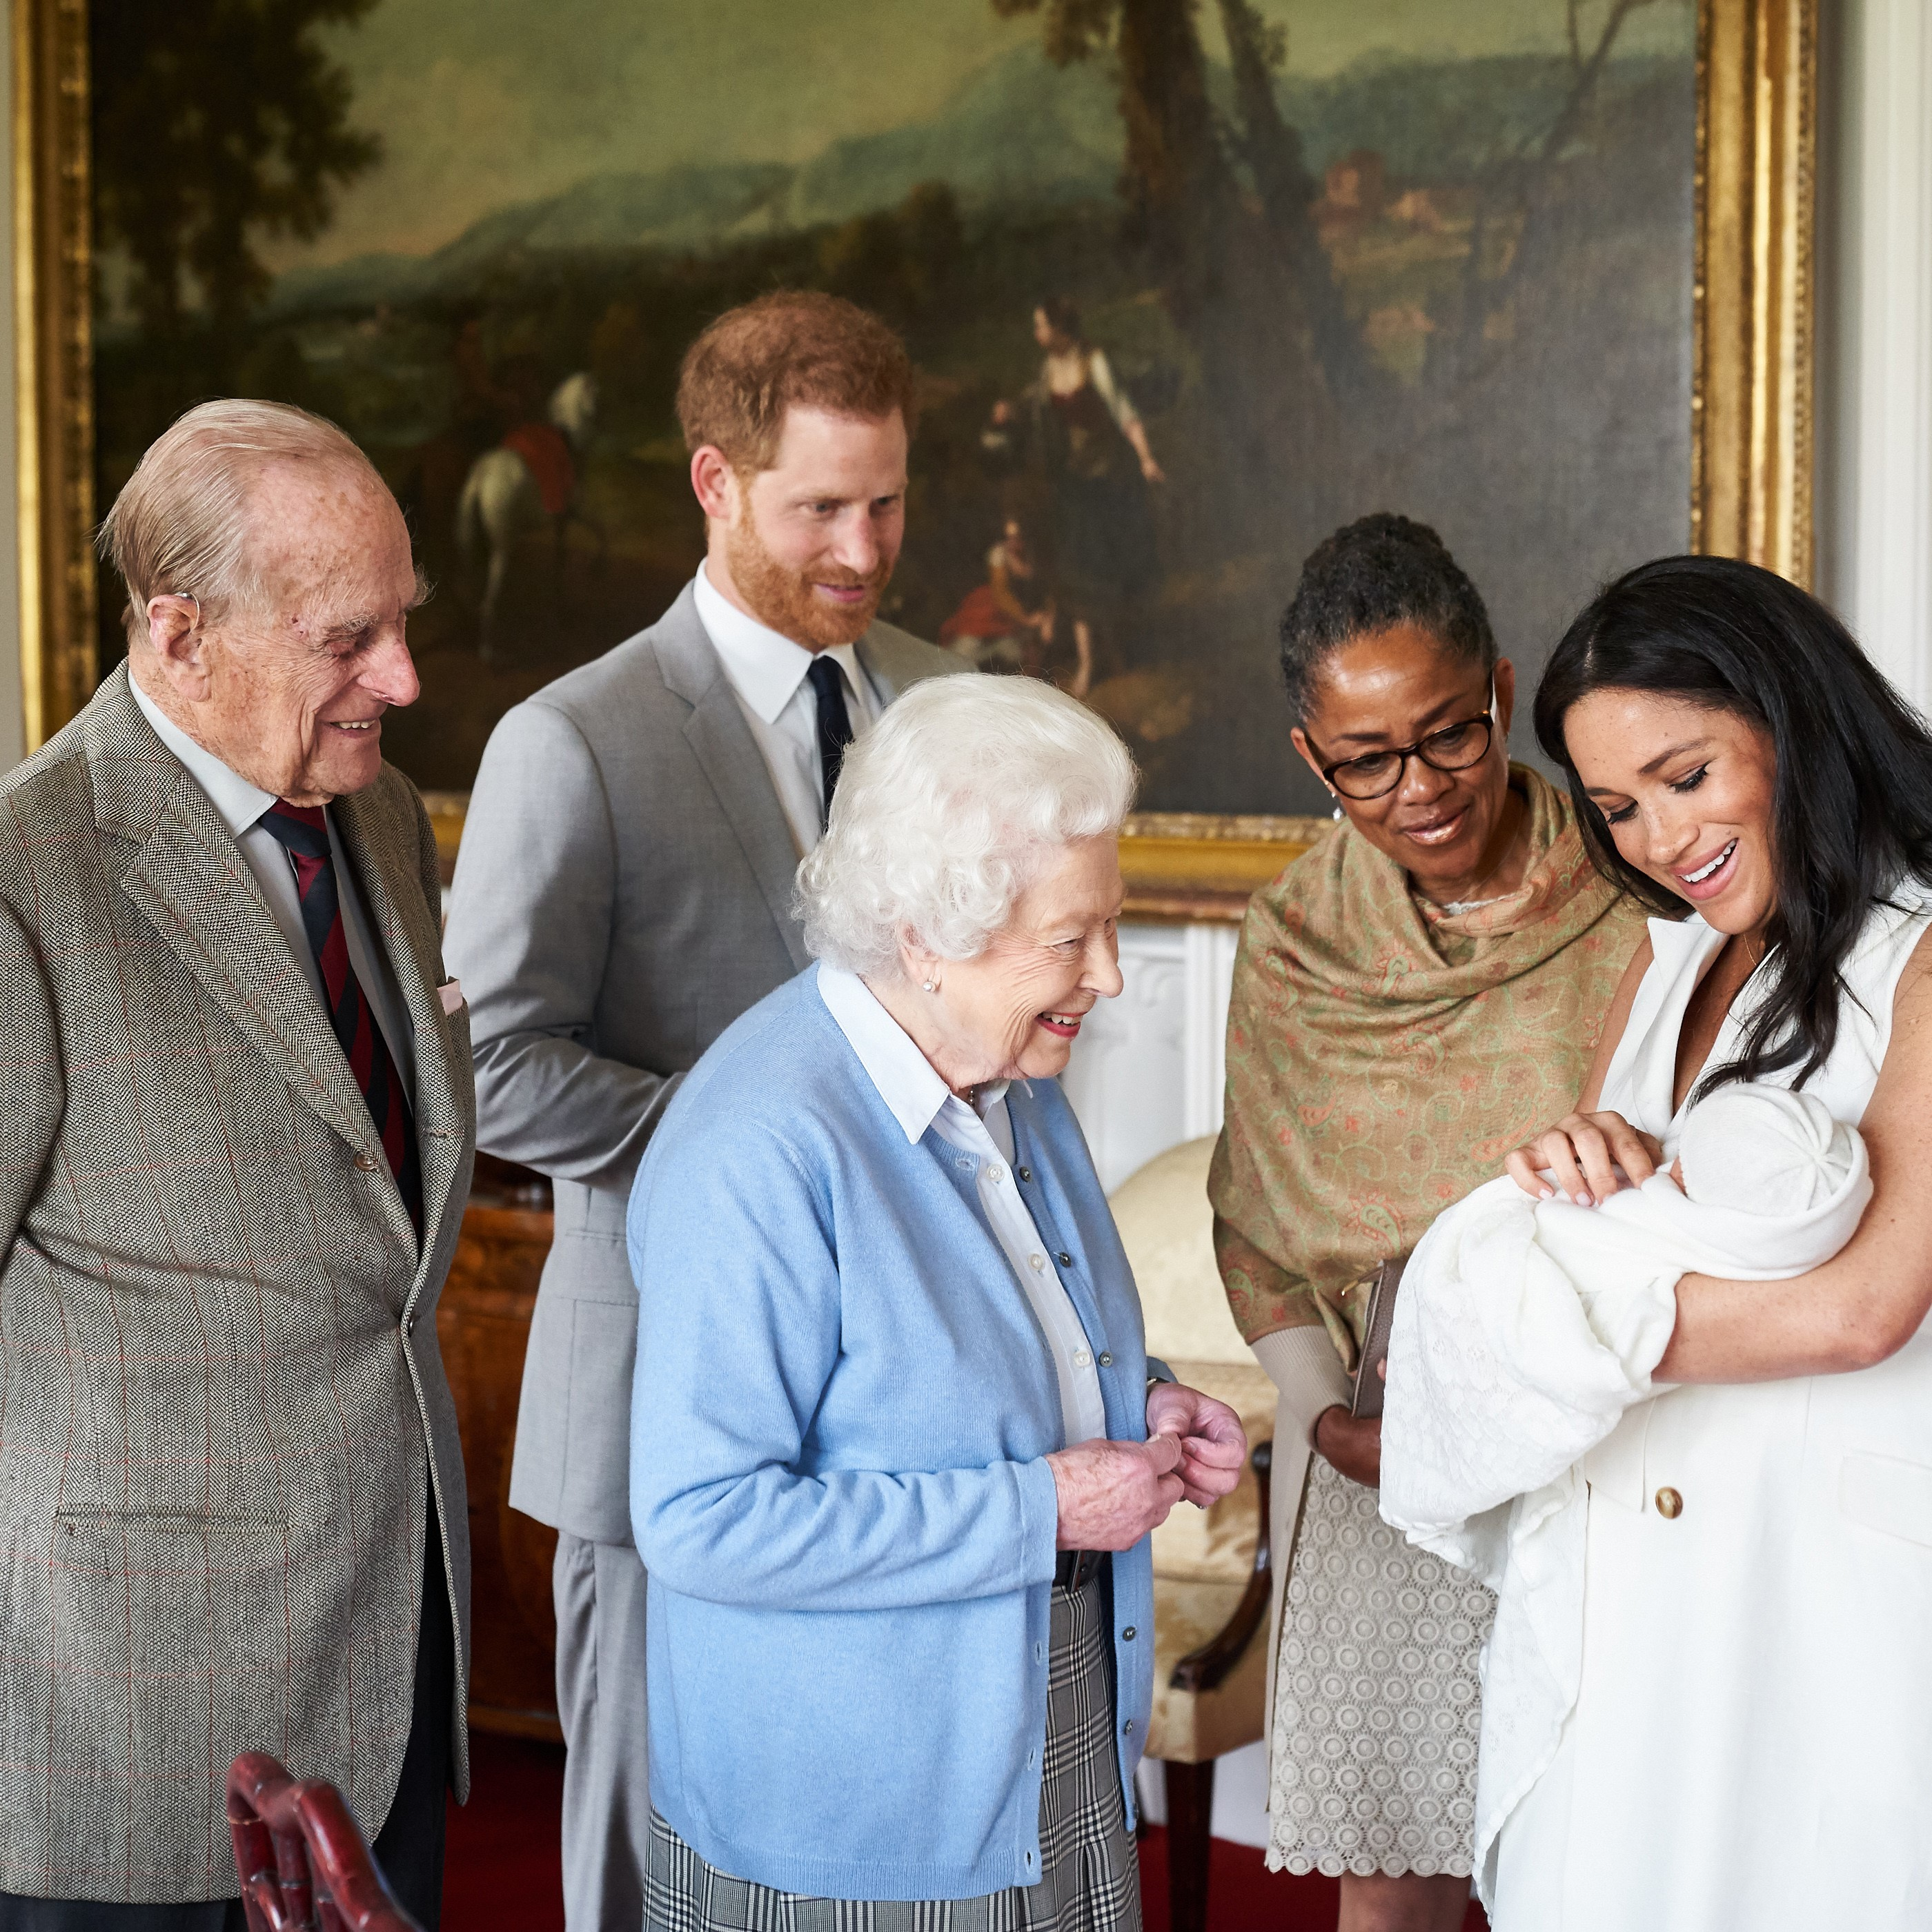 The Queen and Archie